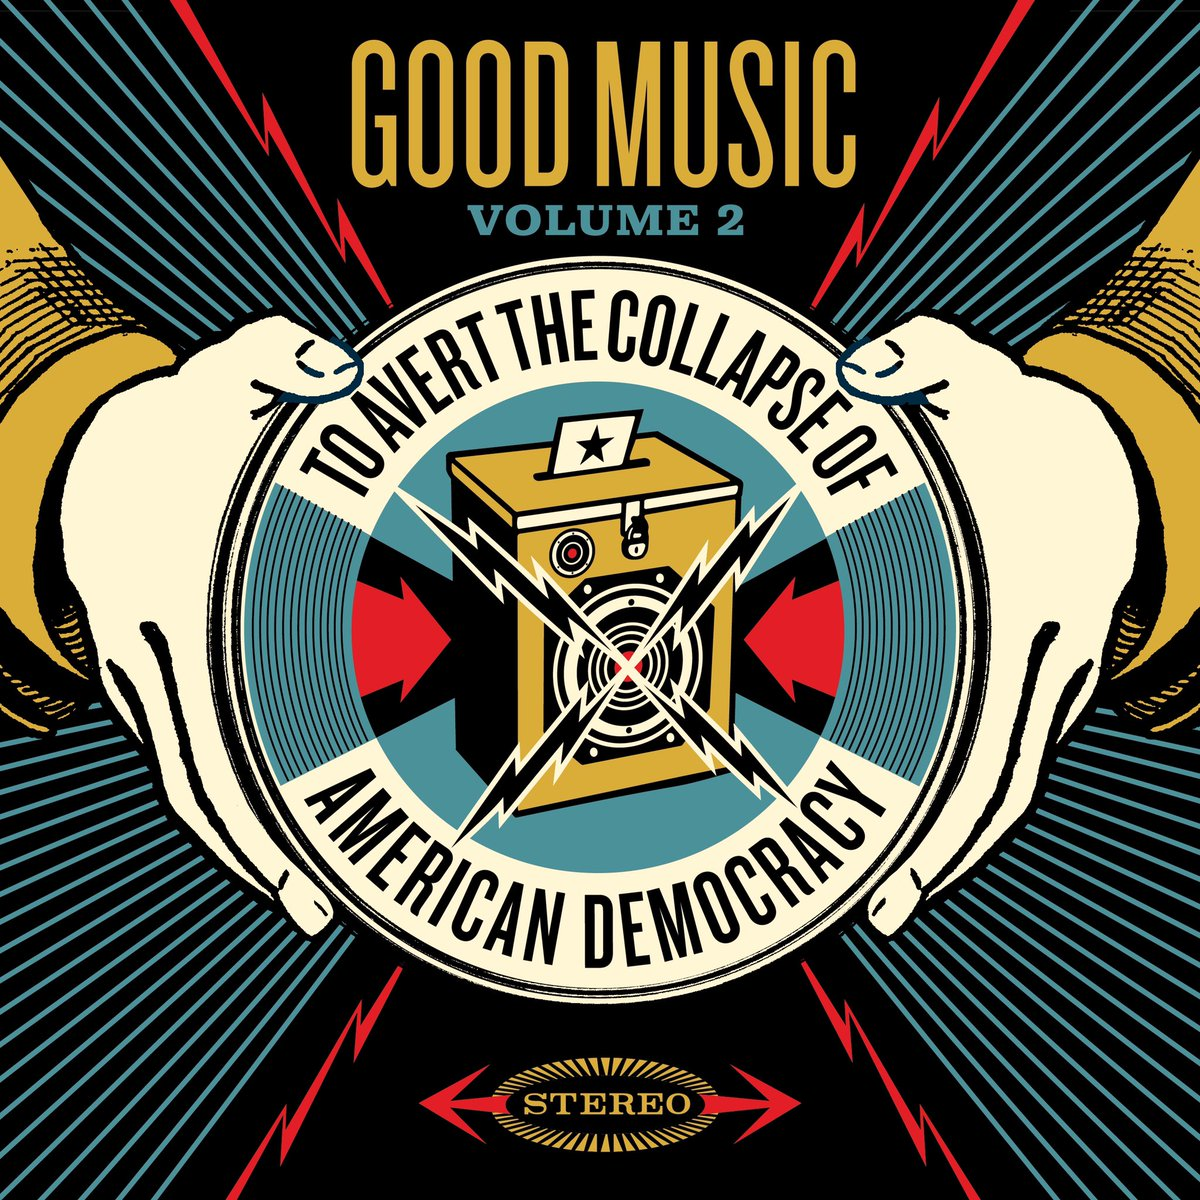 Very excited to be a part of 'Good Music To Avert The Collapse Of American Democracy - Volume 2' a fundraising compilation album available for ONE DAY ONLY this Friday 10/2 on @Bandcamp !! All proceeds go to @votingrightslab.  https://t.co/bT0PGSq7rW https://t.co/IXKqUquWqU